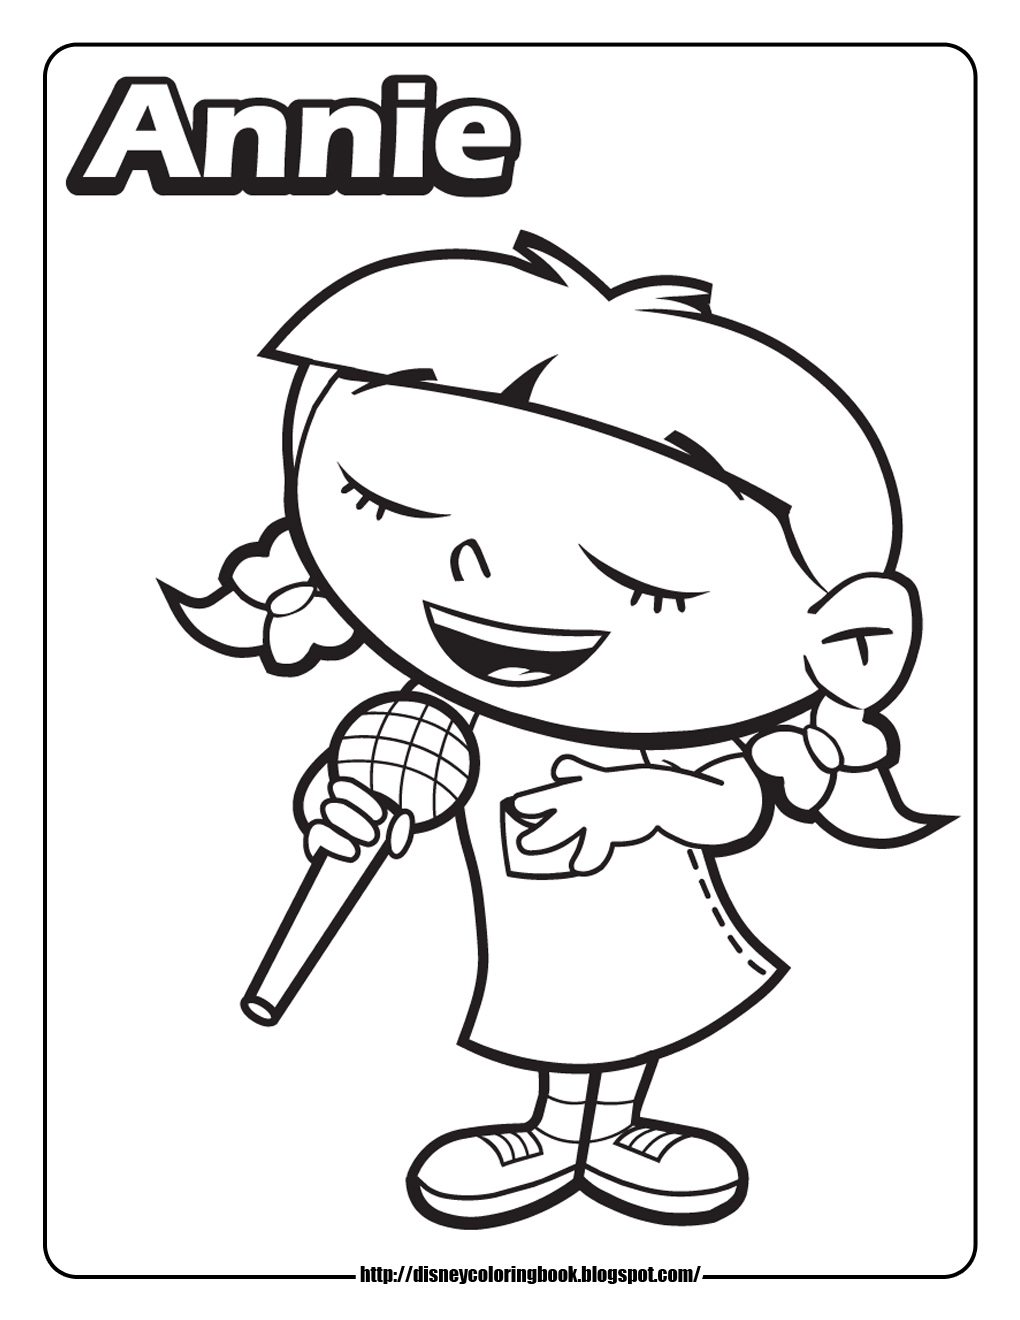 Little Einsteins Annie Coloring Pages Coloring Pages Annie